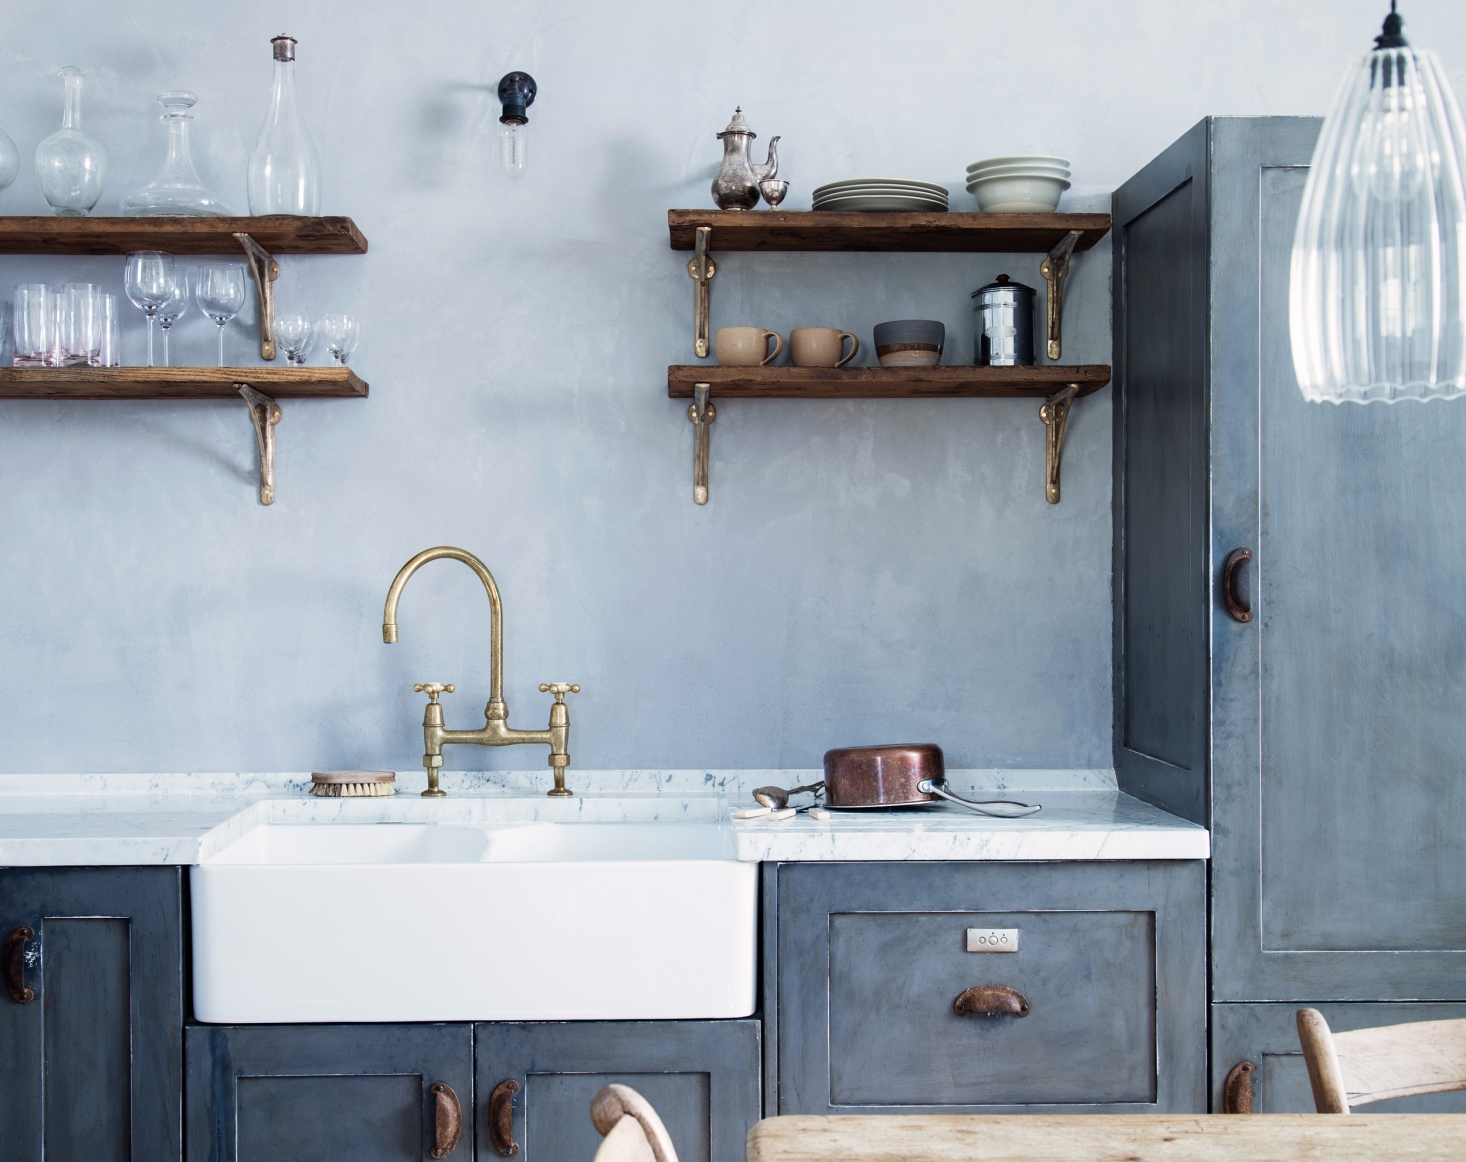 The Pros And Cons Of Single Bowl Versus Double Bowl Kitchen Sinks